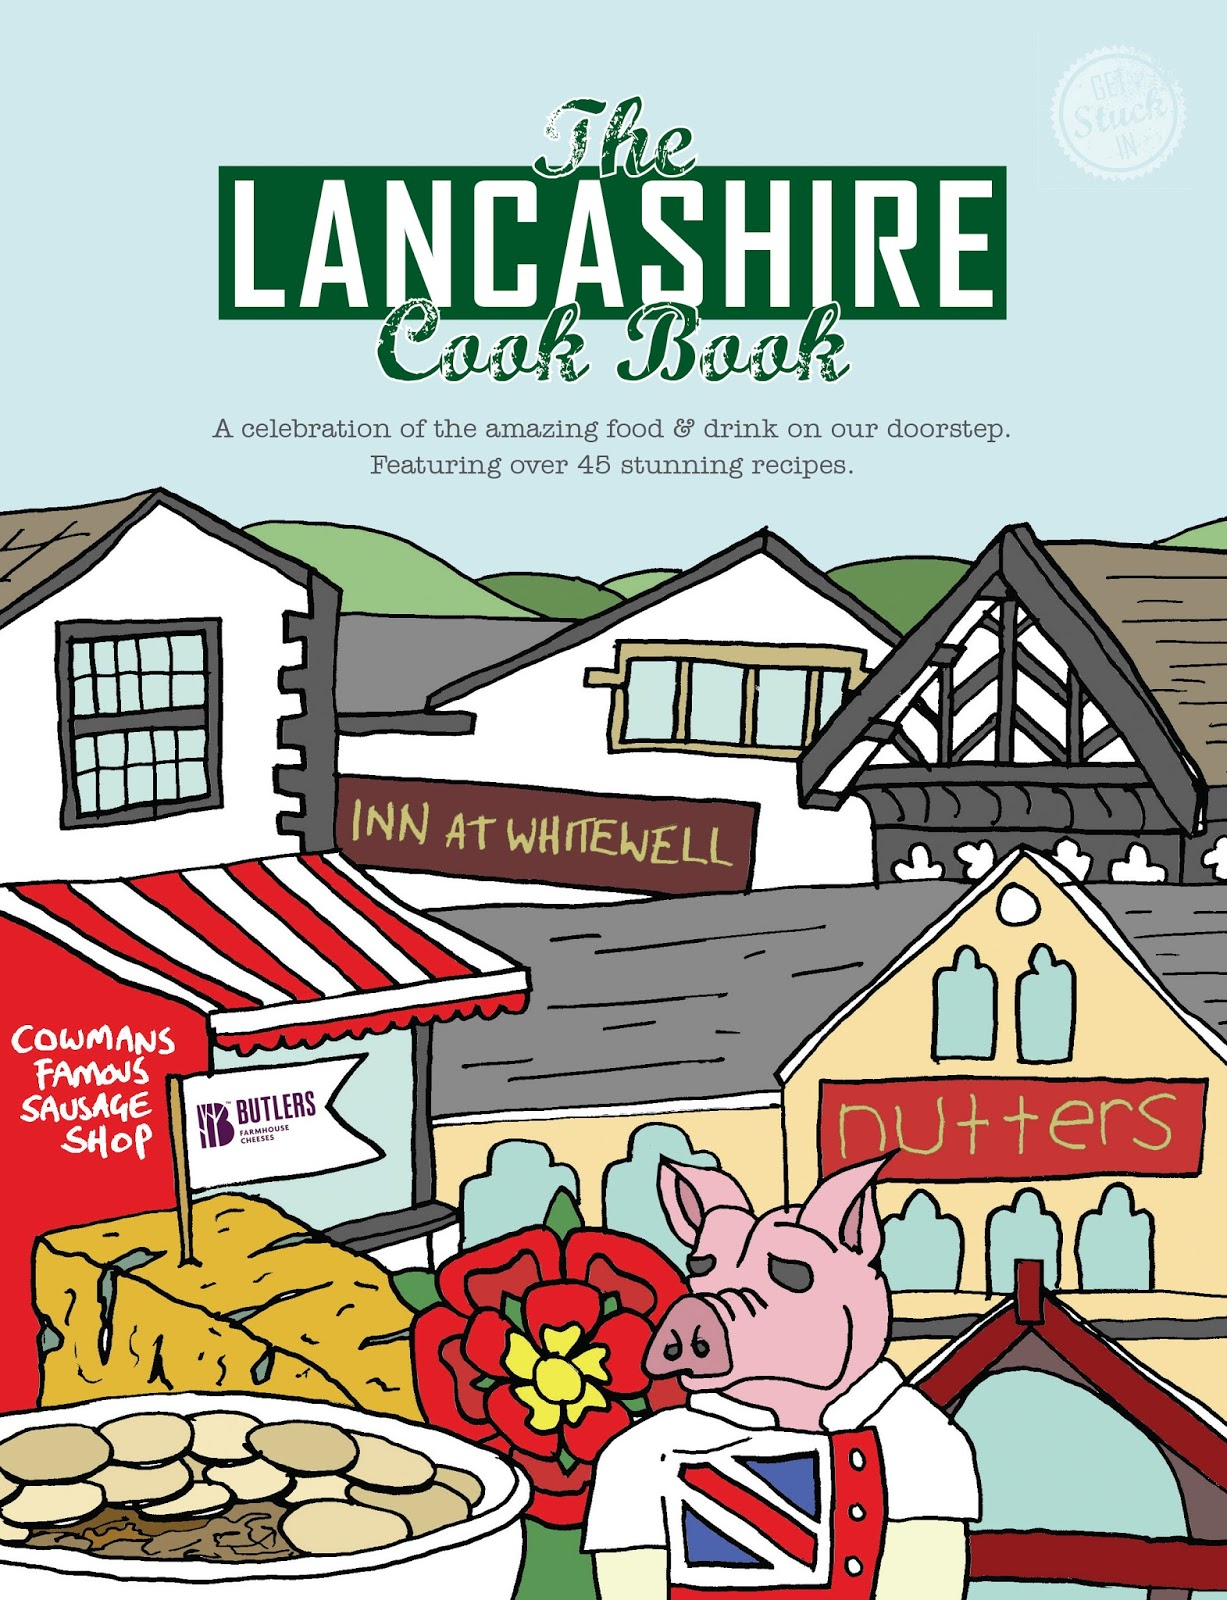 The Lancashire Cook Book - review and giveaway